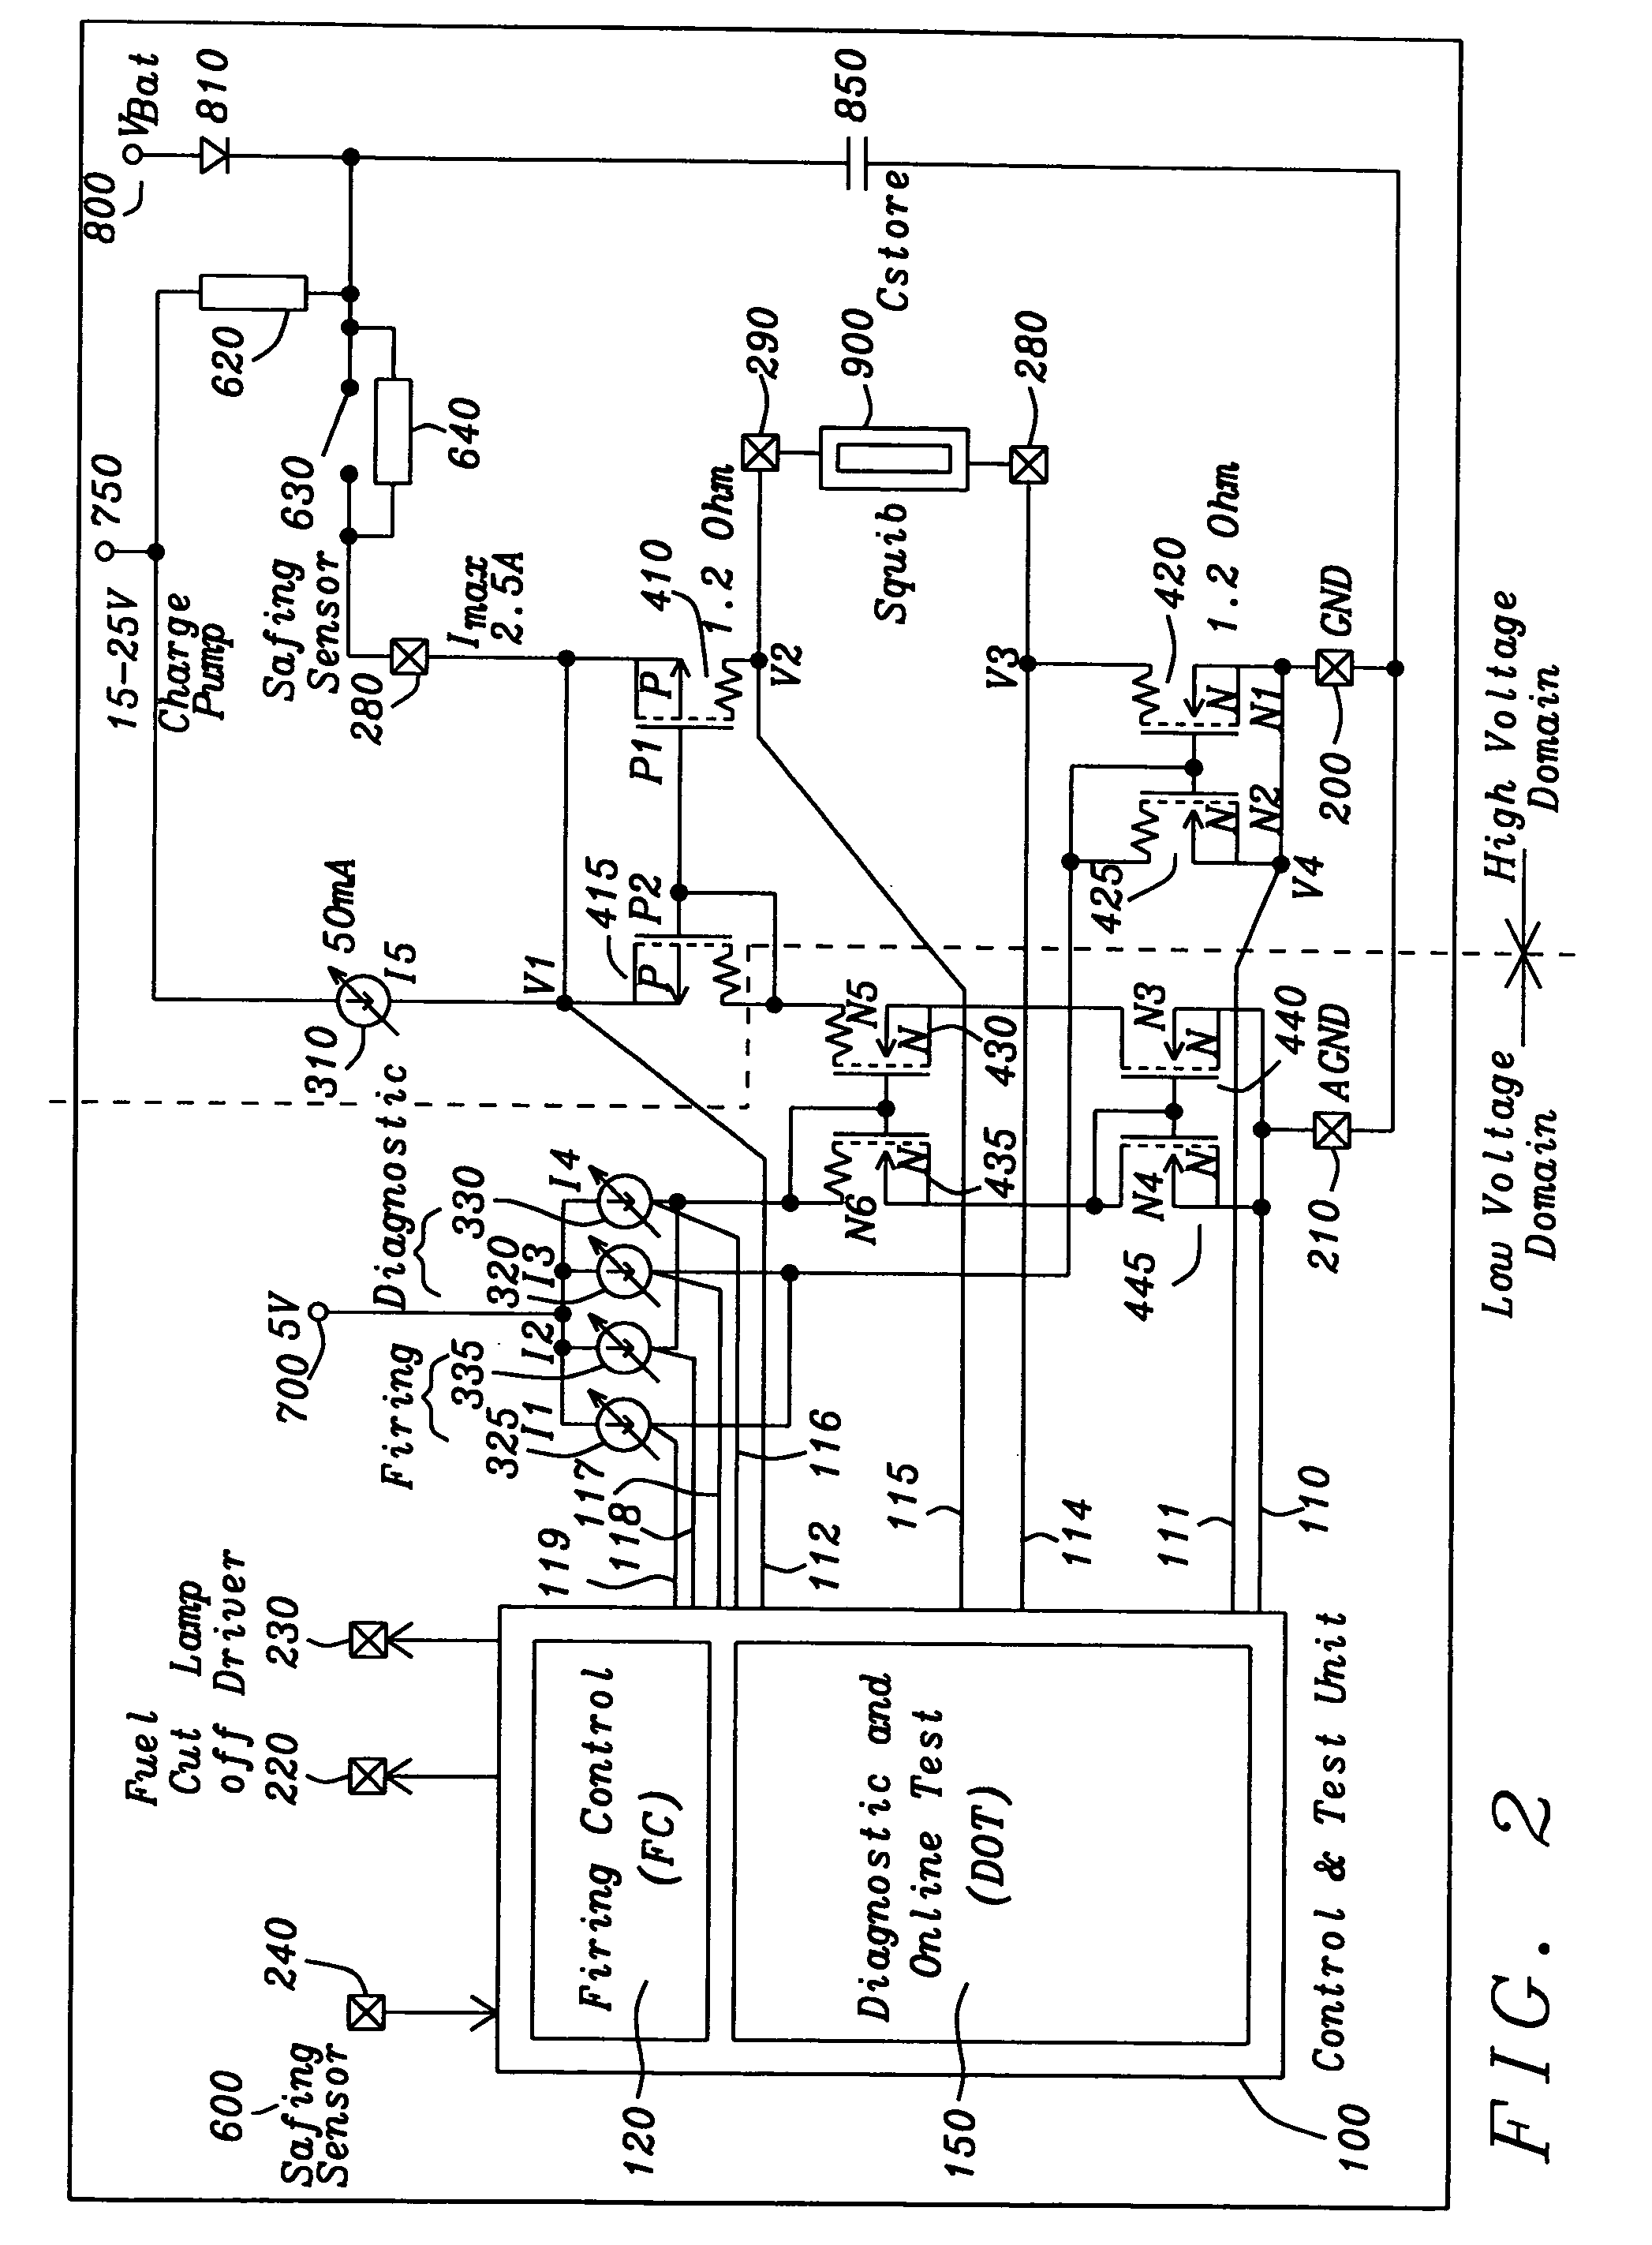 US20050225924A1 20051013 D00003 patent us20050225924 squib driver for airbag application avs air ride controller wiring diagram at bakdesigns.co